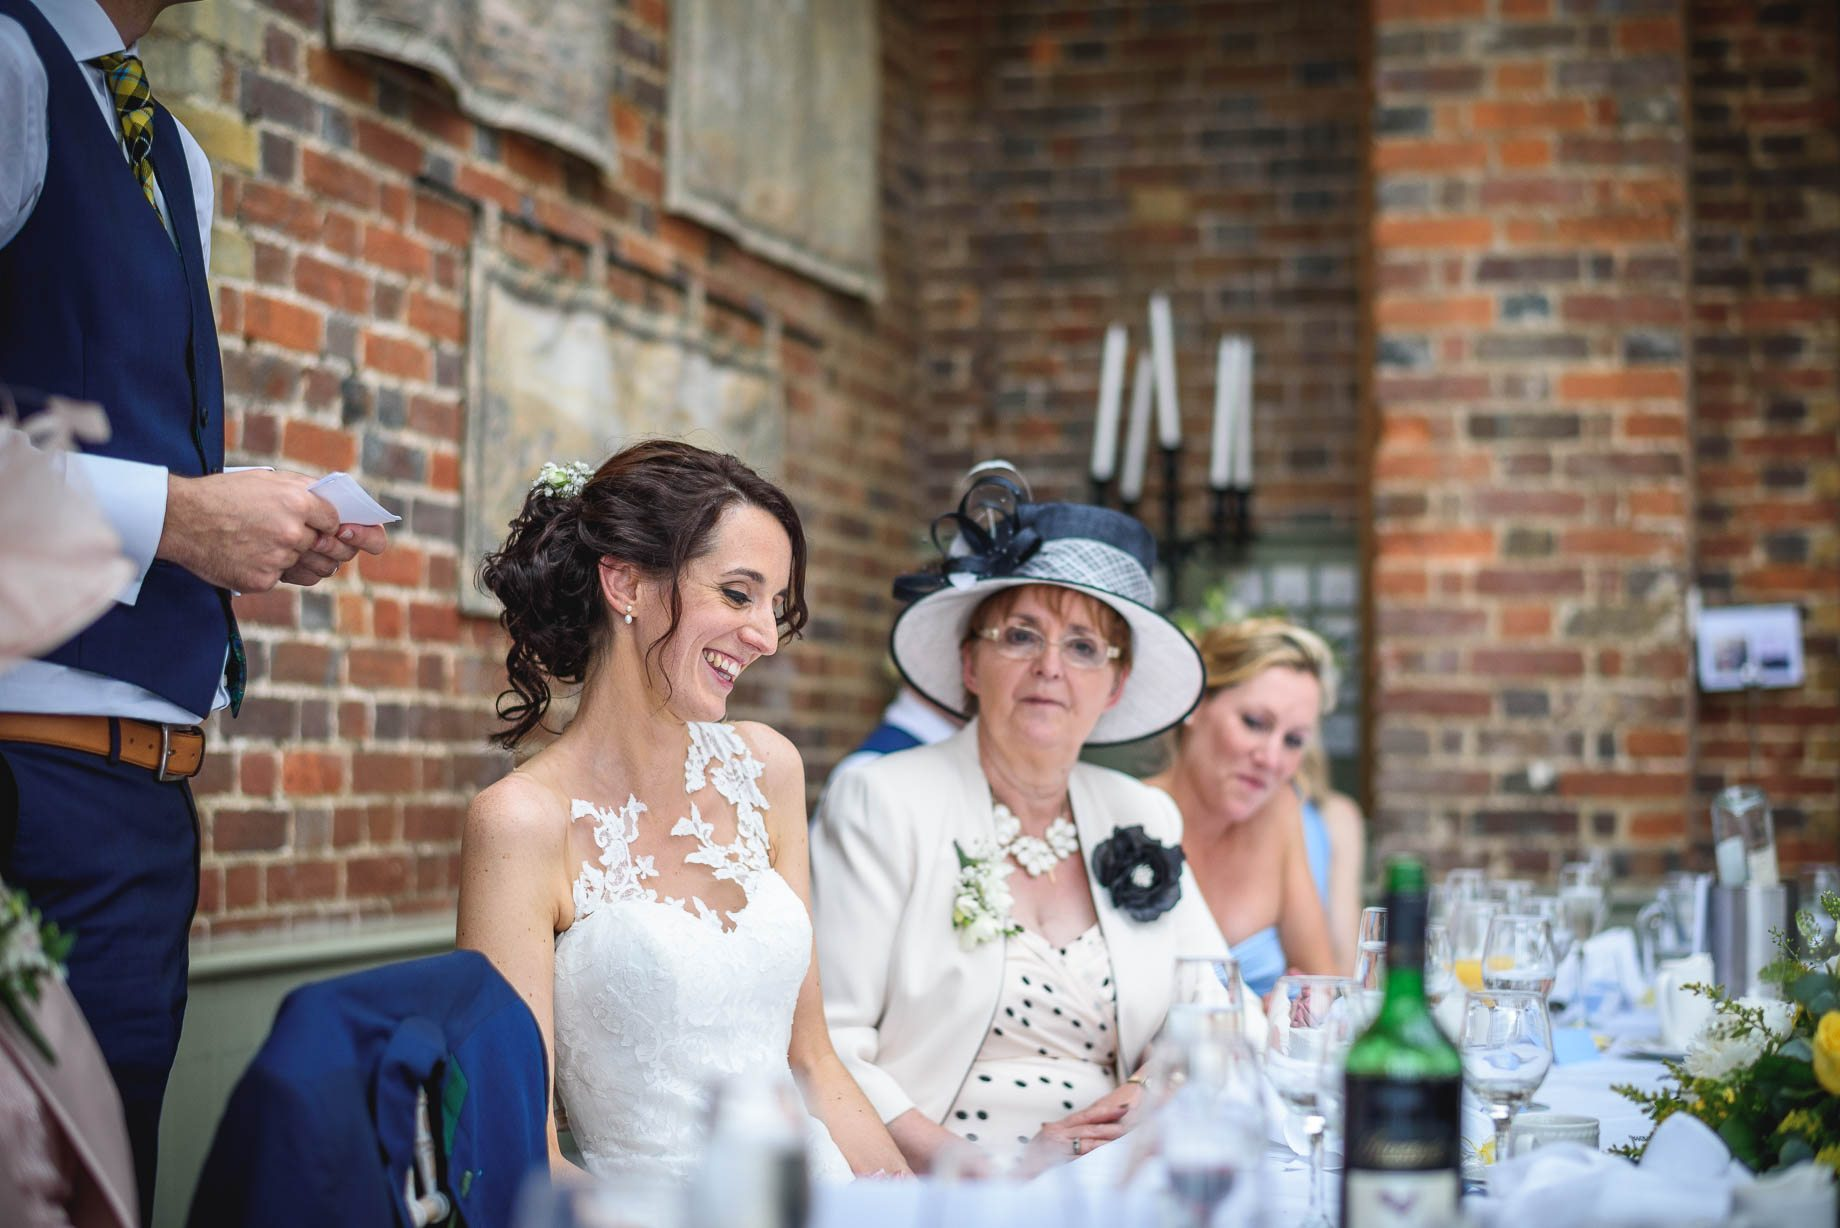 Hertfordshire wedding photography - Sarah and Stephen by Guy Collier Photography (122 of 161)